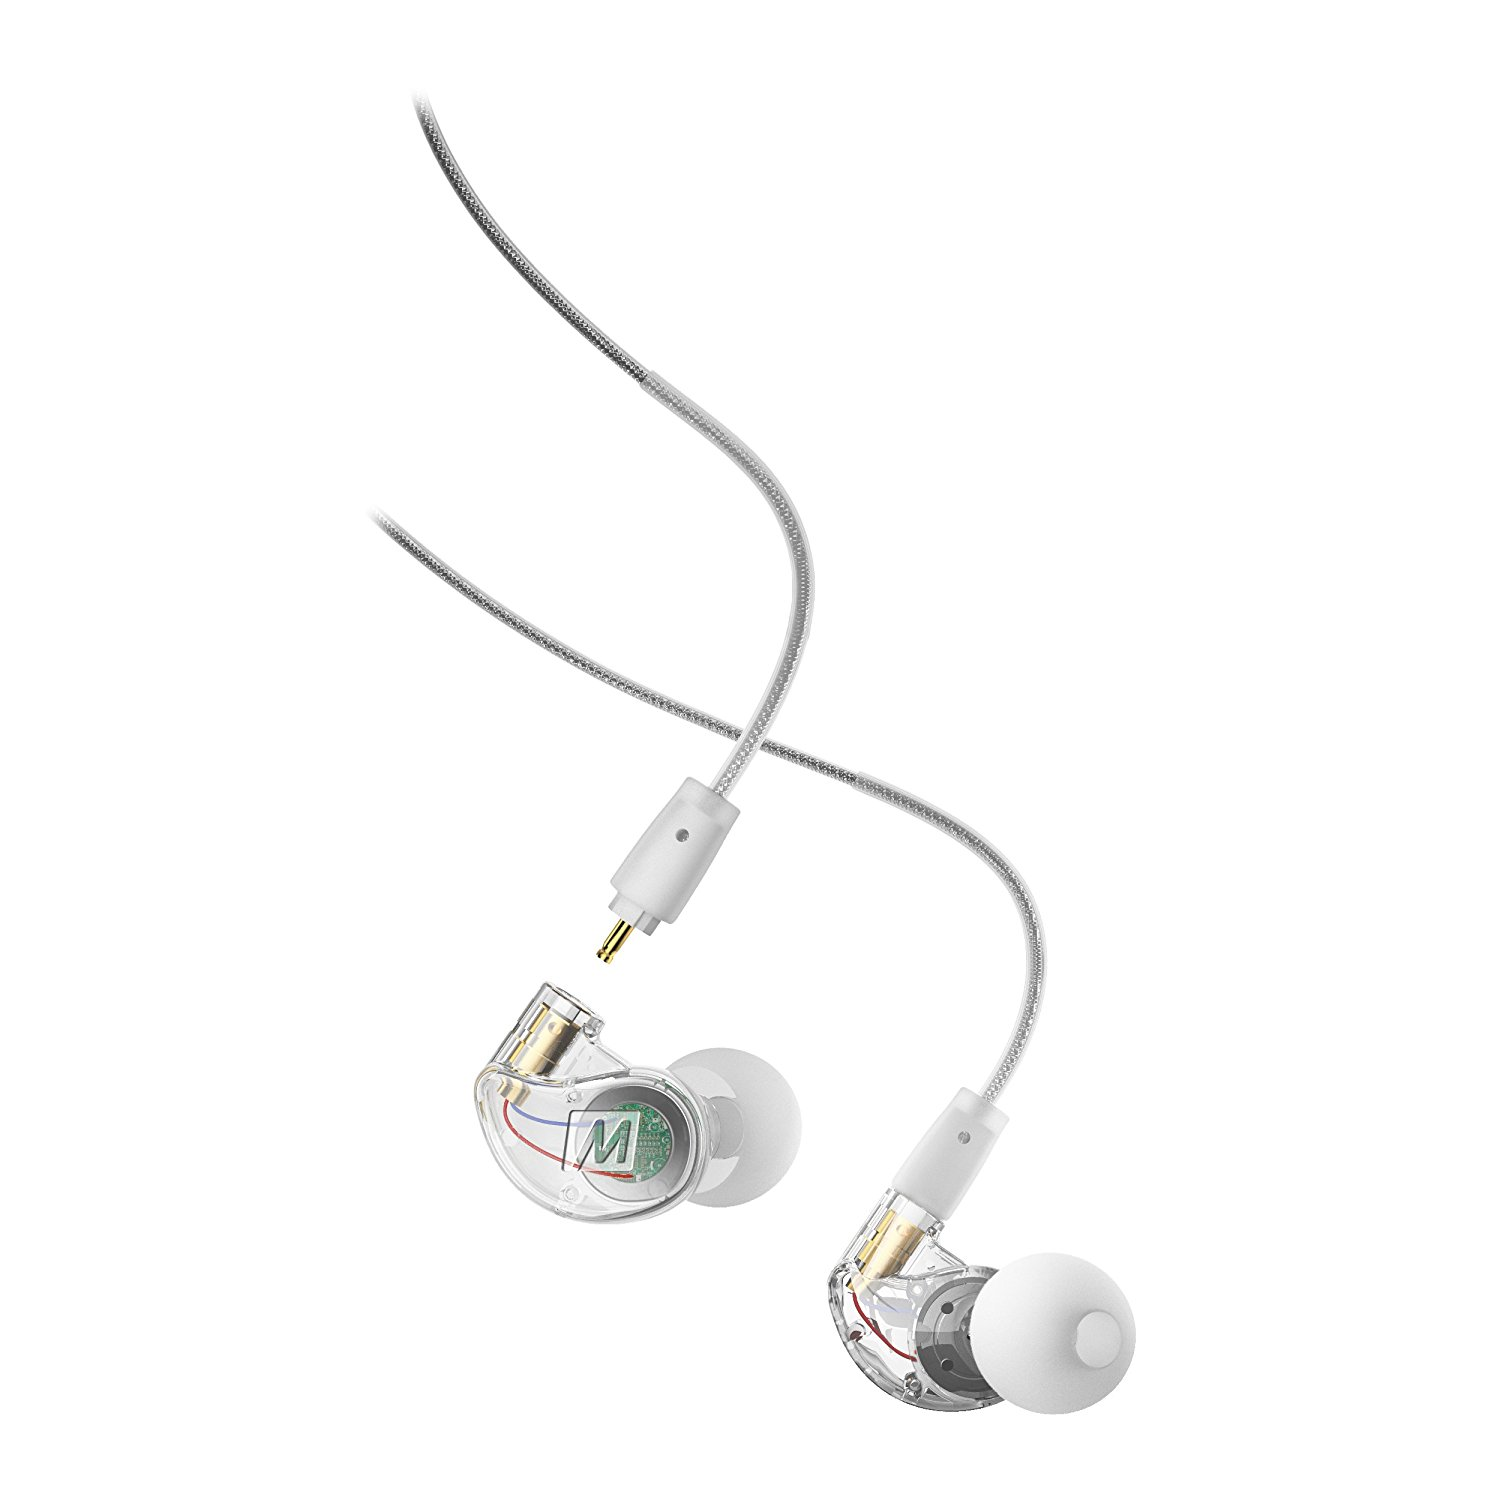 MEE audio M6 PRO 2nd generation Universal-Fit Noise-Isolating Musicians' In-Ear Monitors with Detachable Cables (Clear)